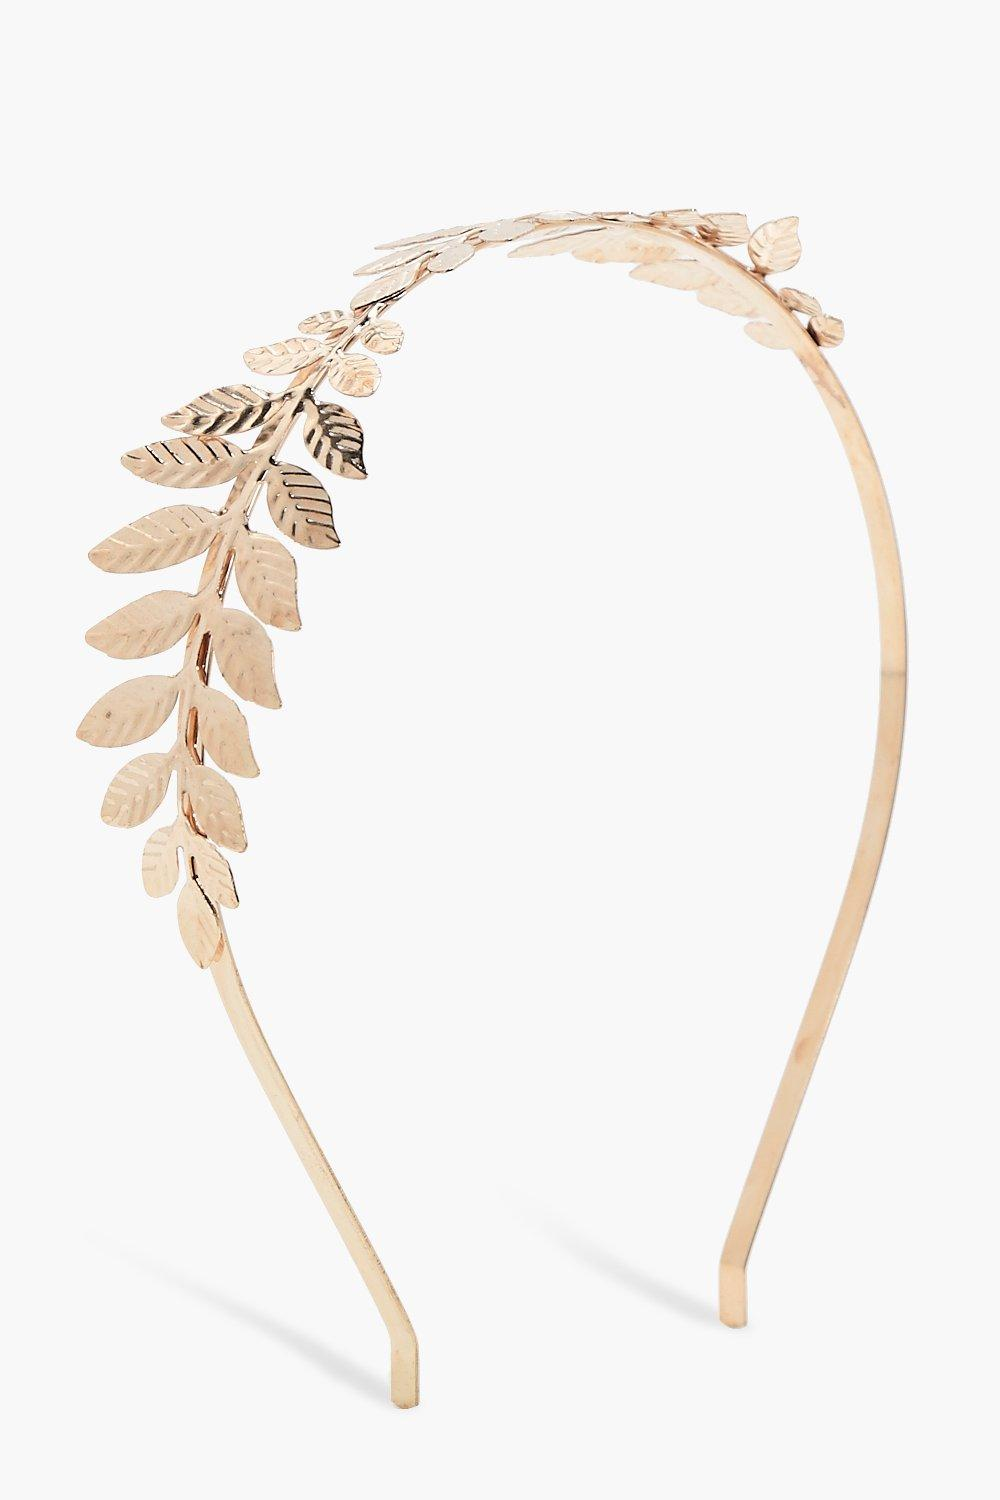 Leaf Feather Metal Headband - gold - Sarah Leaf Fe